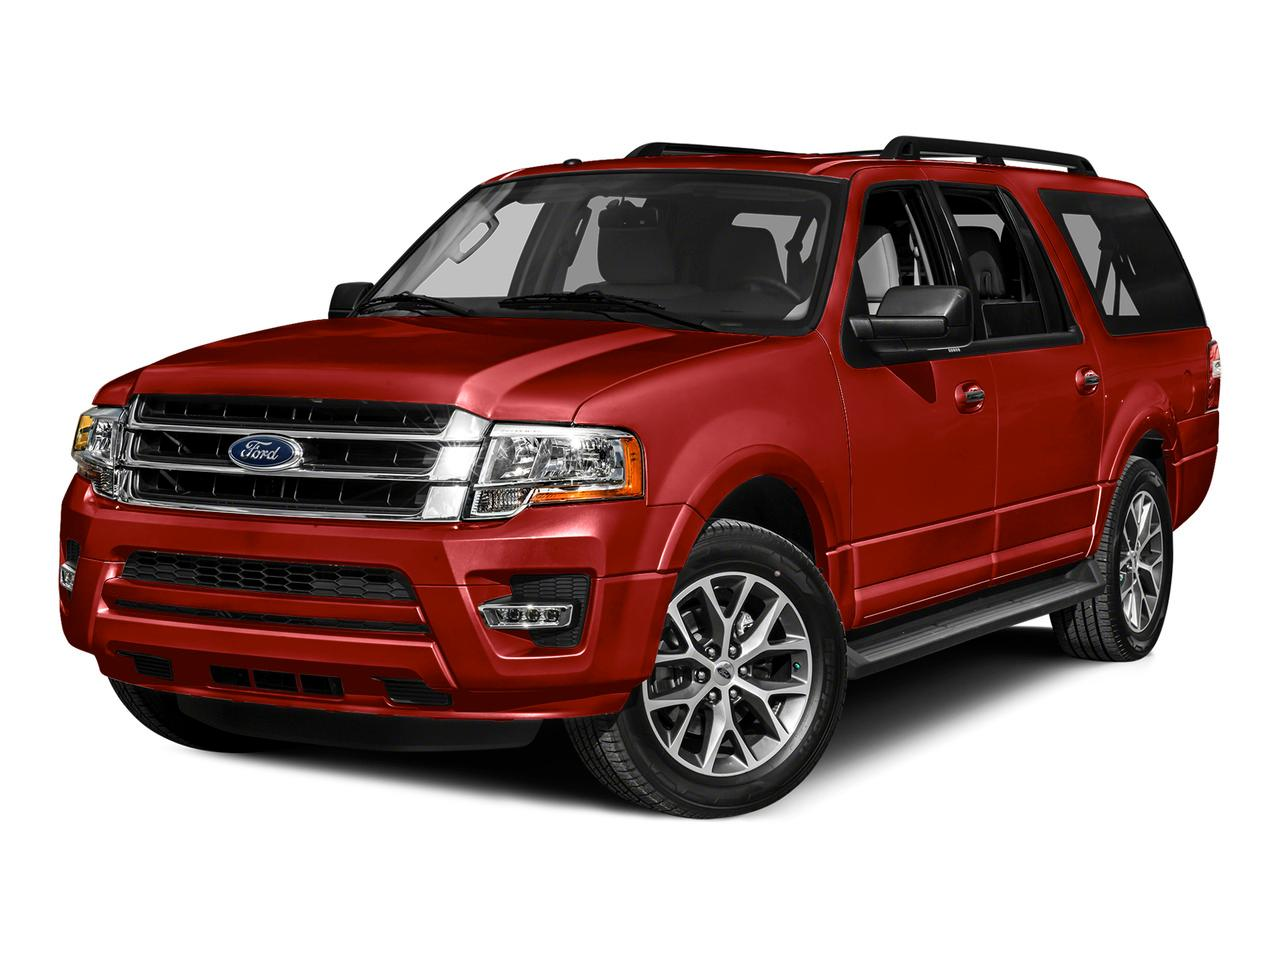 2015 Ford Expedition EL Vehicle Photo in Johnson City, TN 37601